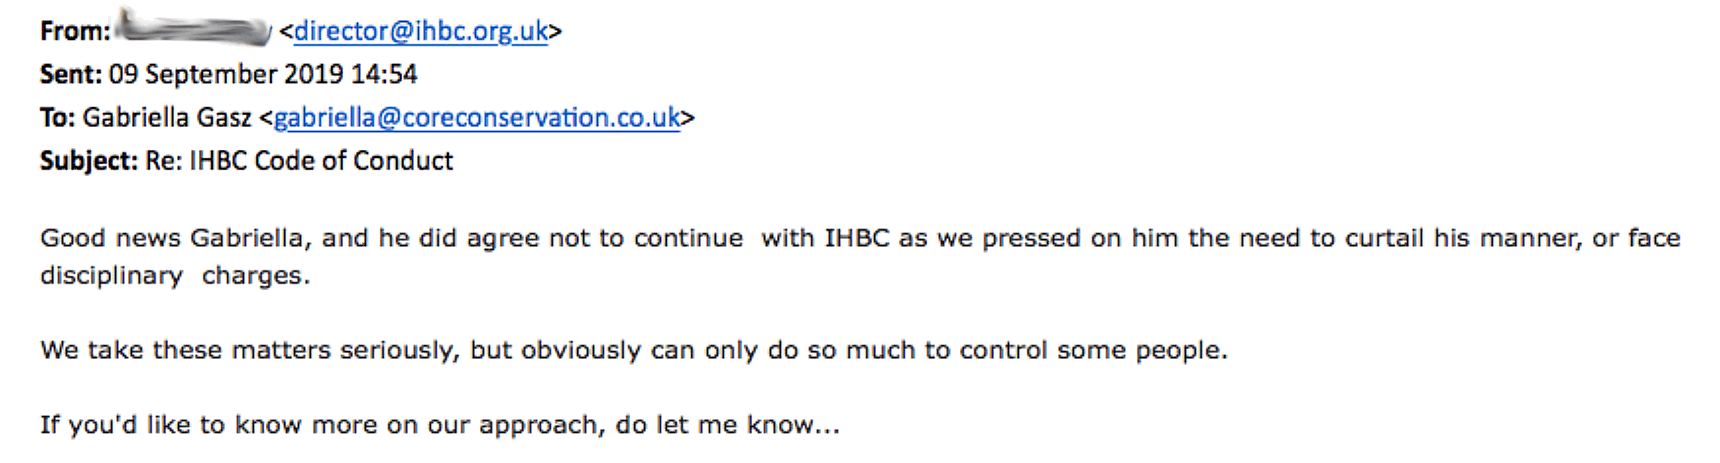 IHBC kicked out member